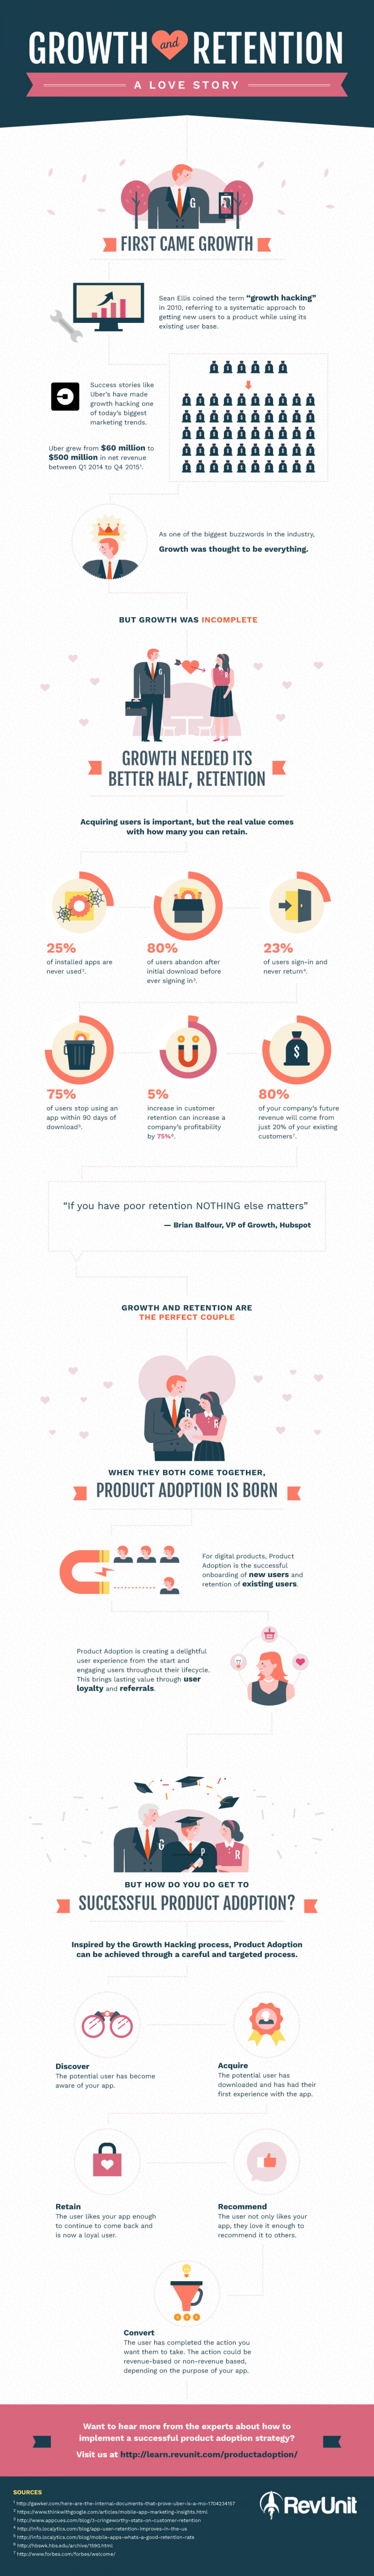 Growth Hacking & Retention: A Love Story Infographic